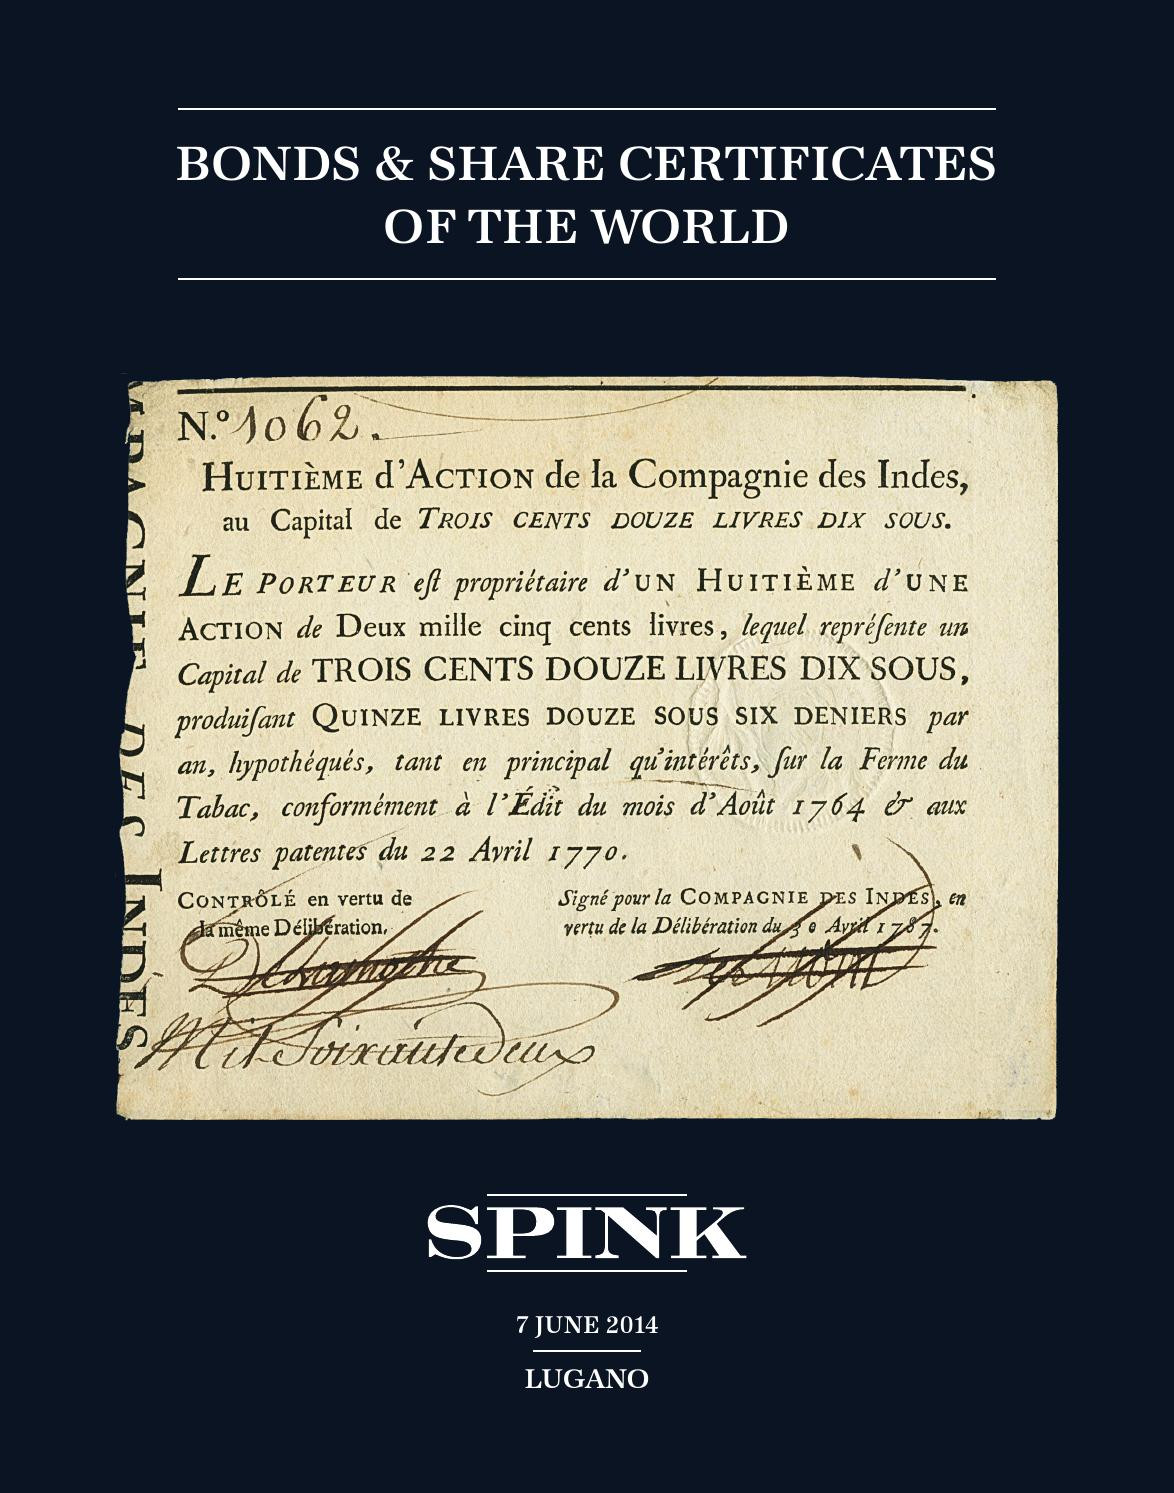 Guyana Legal forms Wonderful Sw1012 Bonds & S Certificates Of the World by Spink